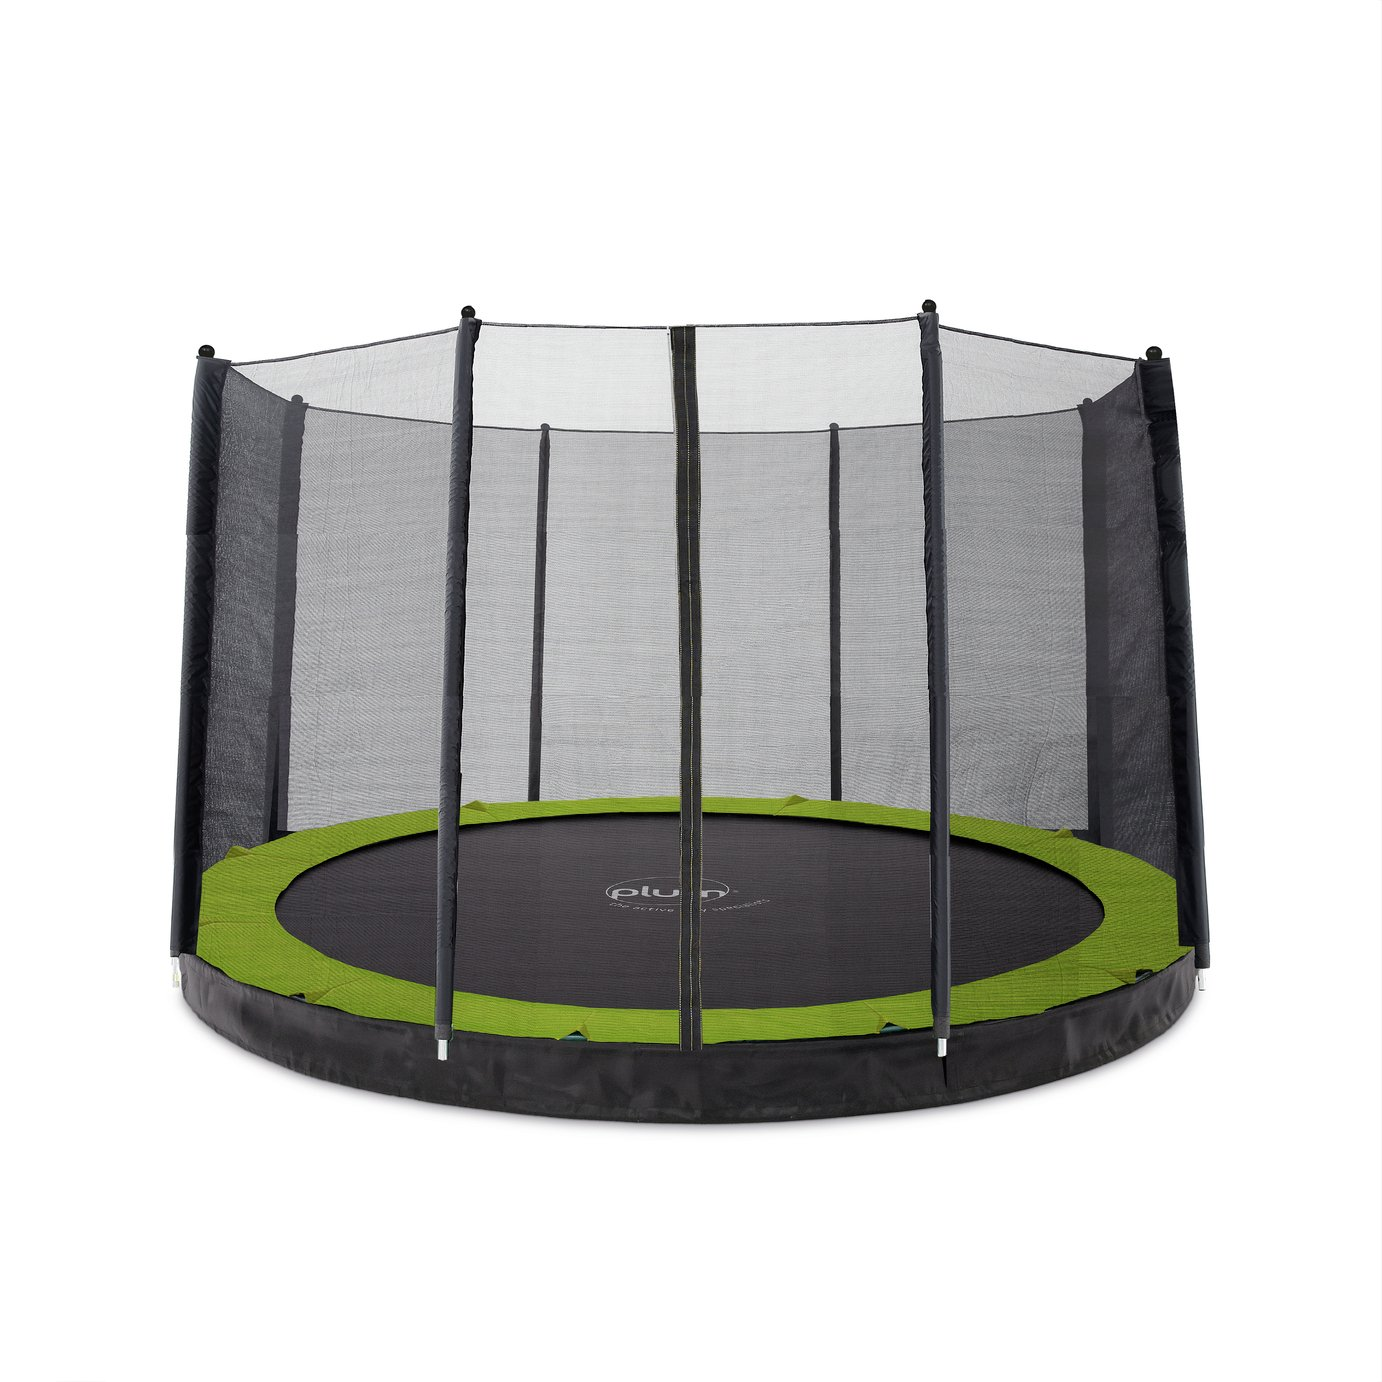 Plum 12ft In Ground Trampoline with Enclosure